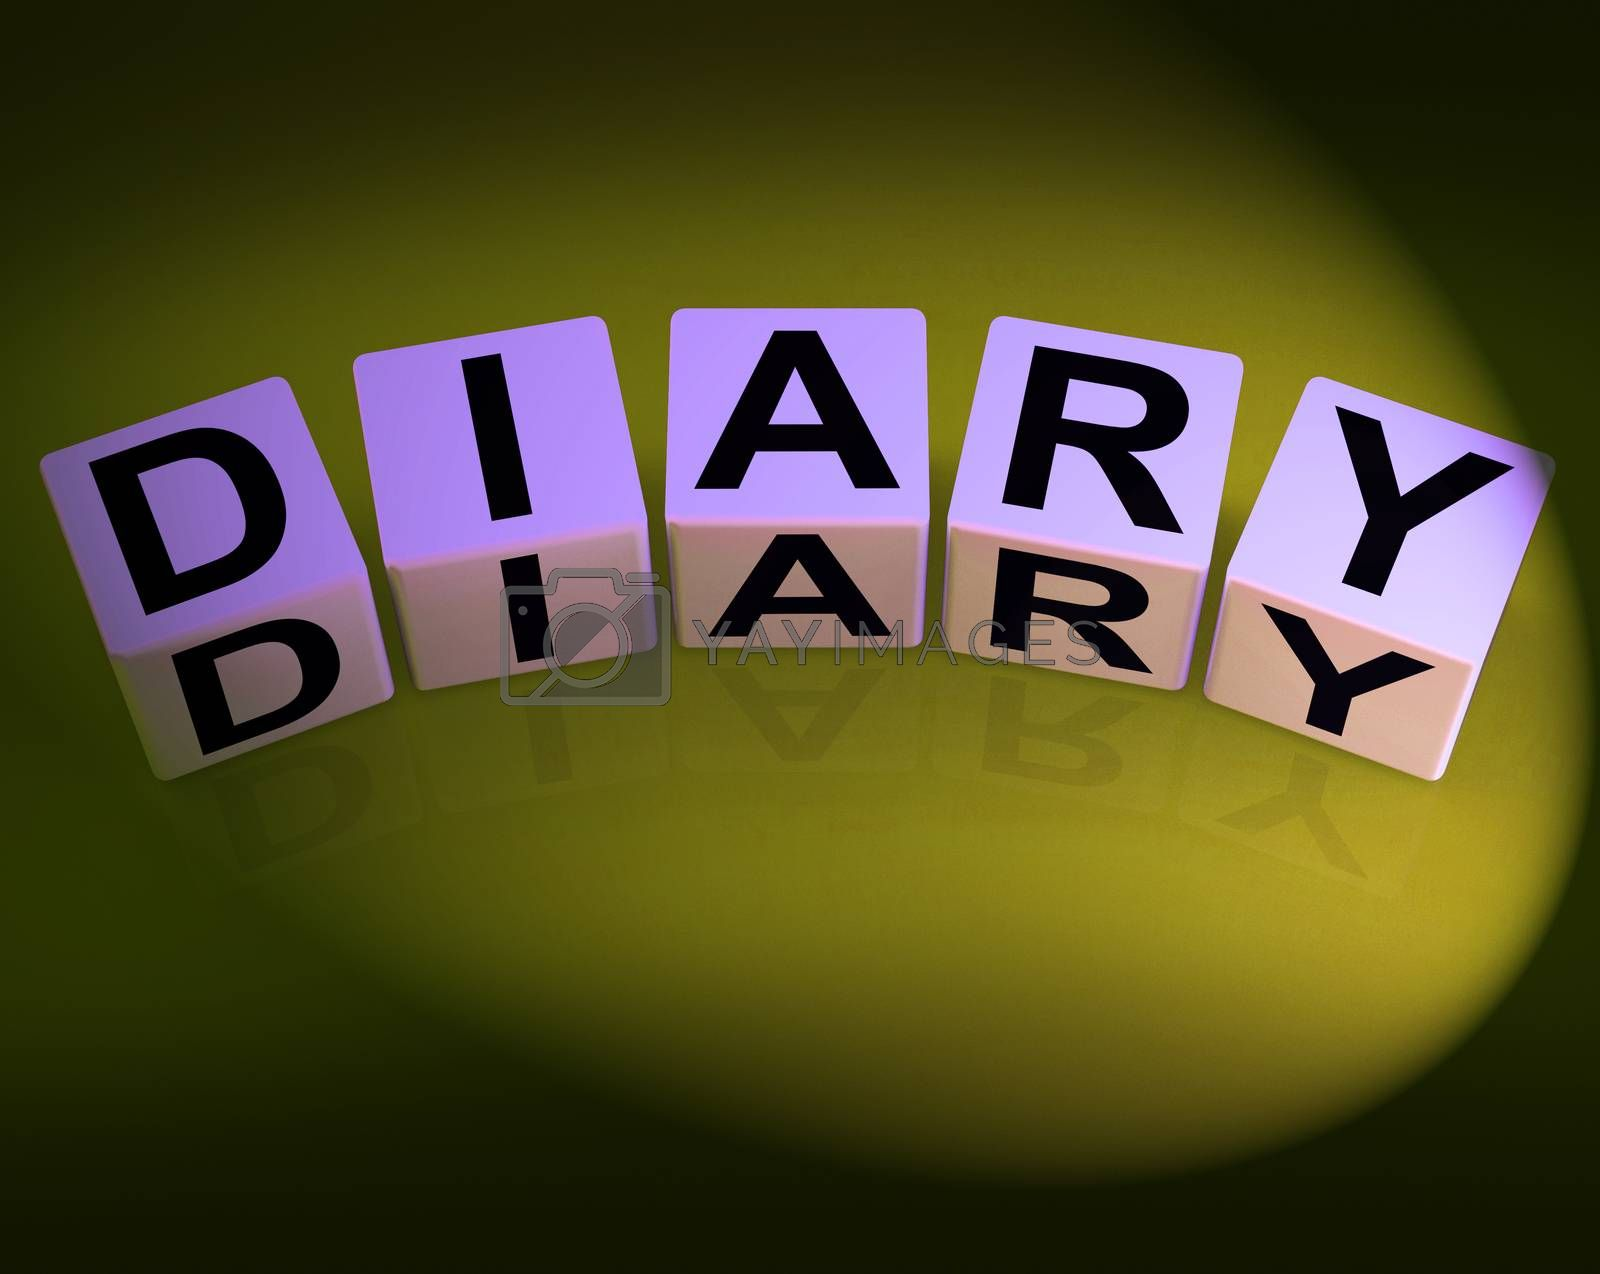 Diary Dice Mean Journal Blog or Autobiographical Record by stuartmiles